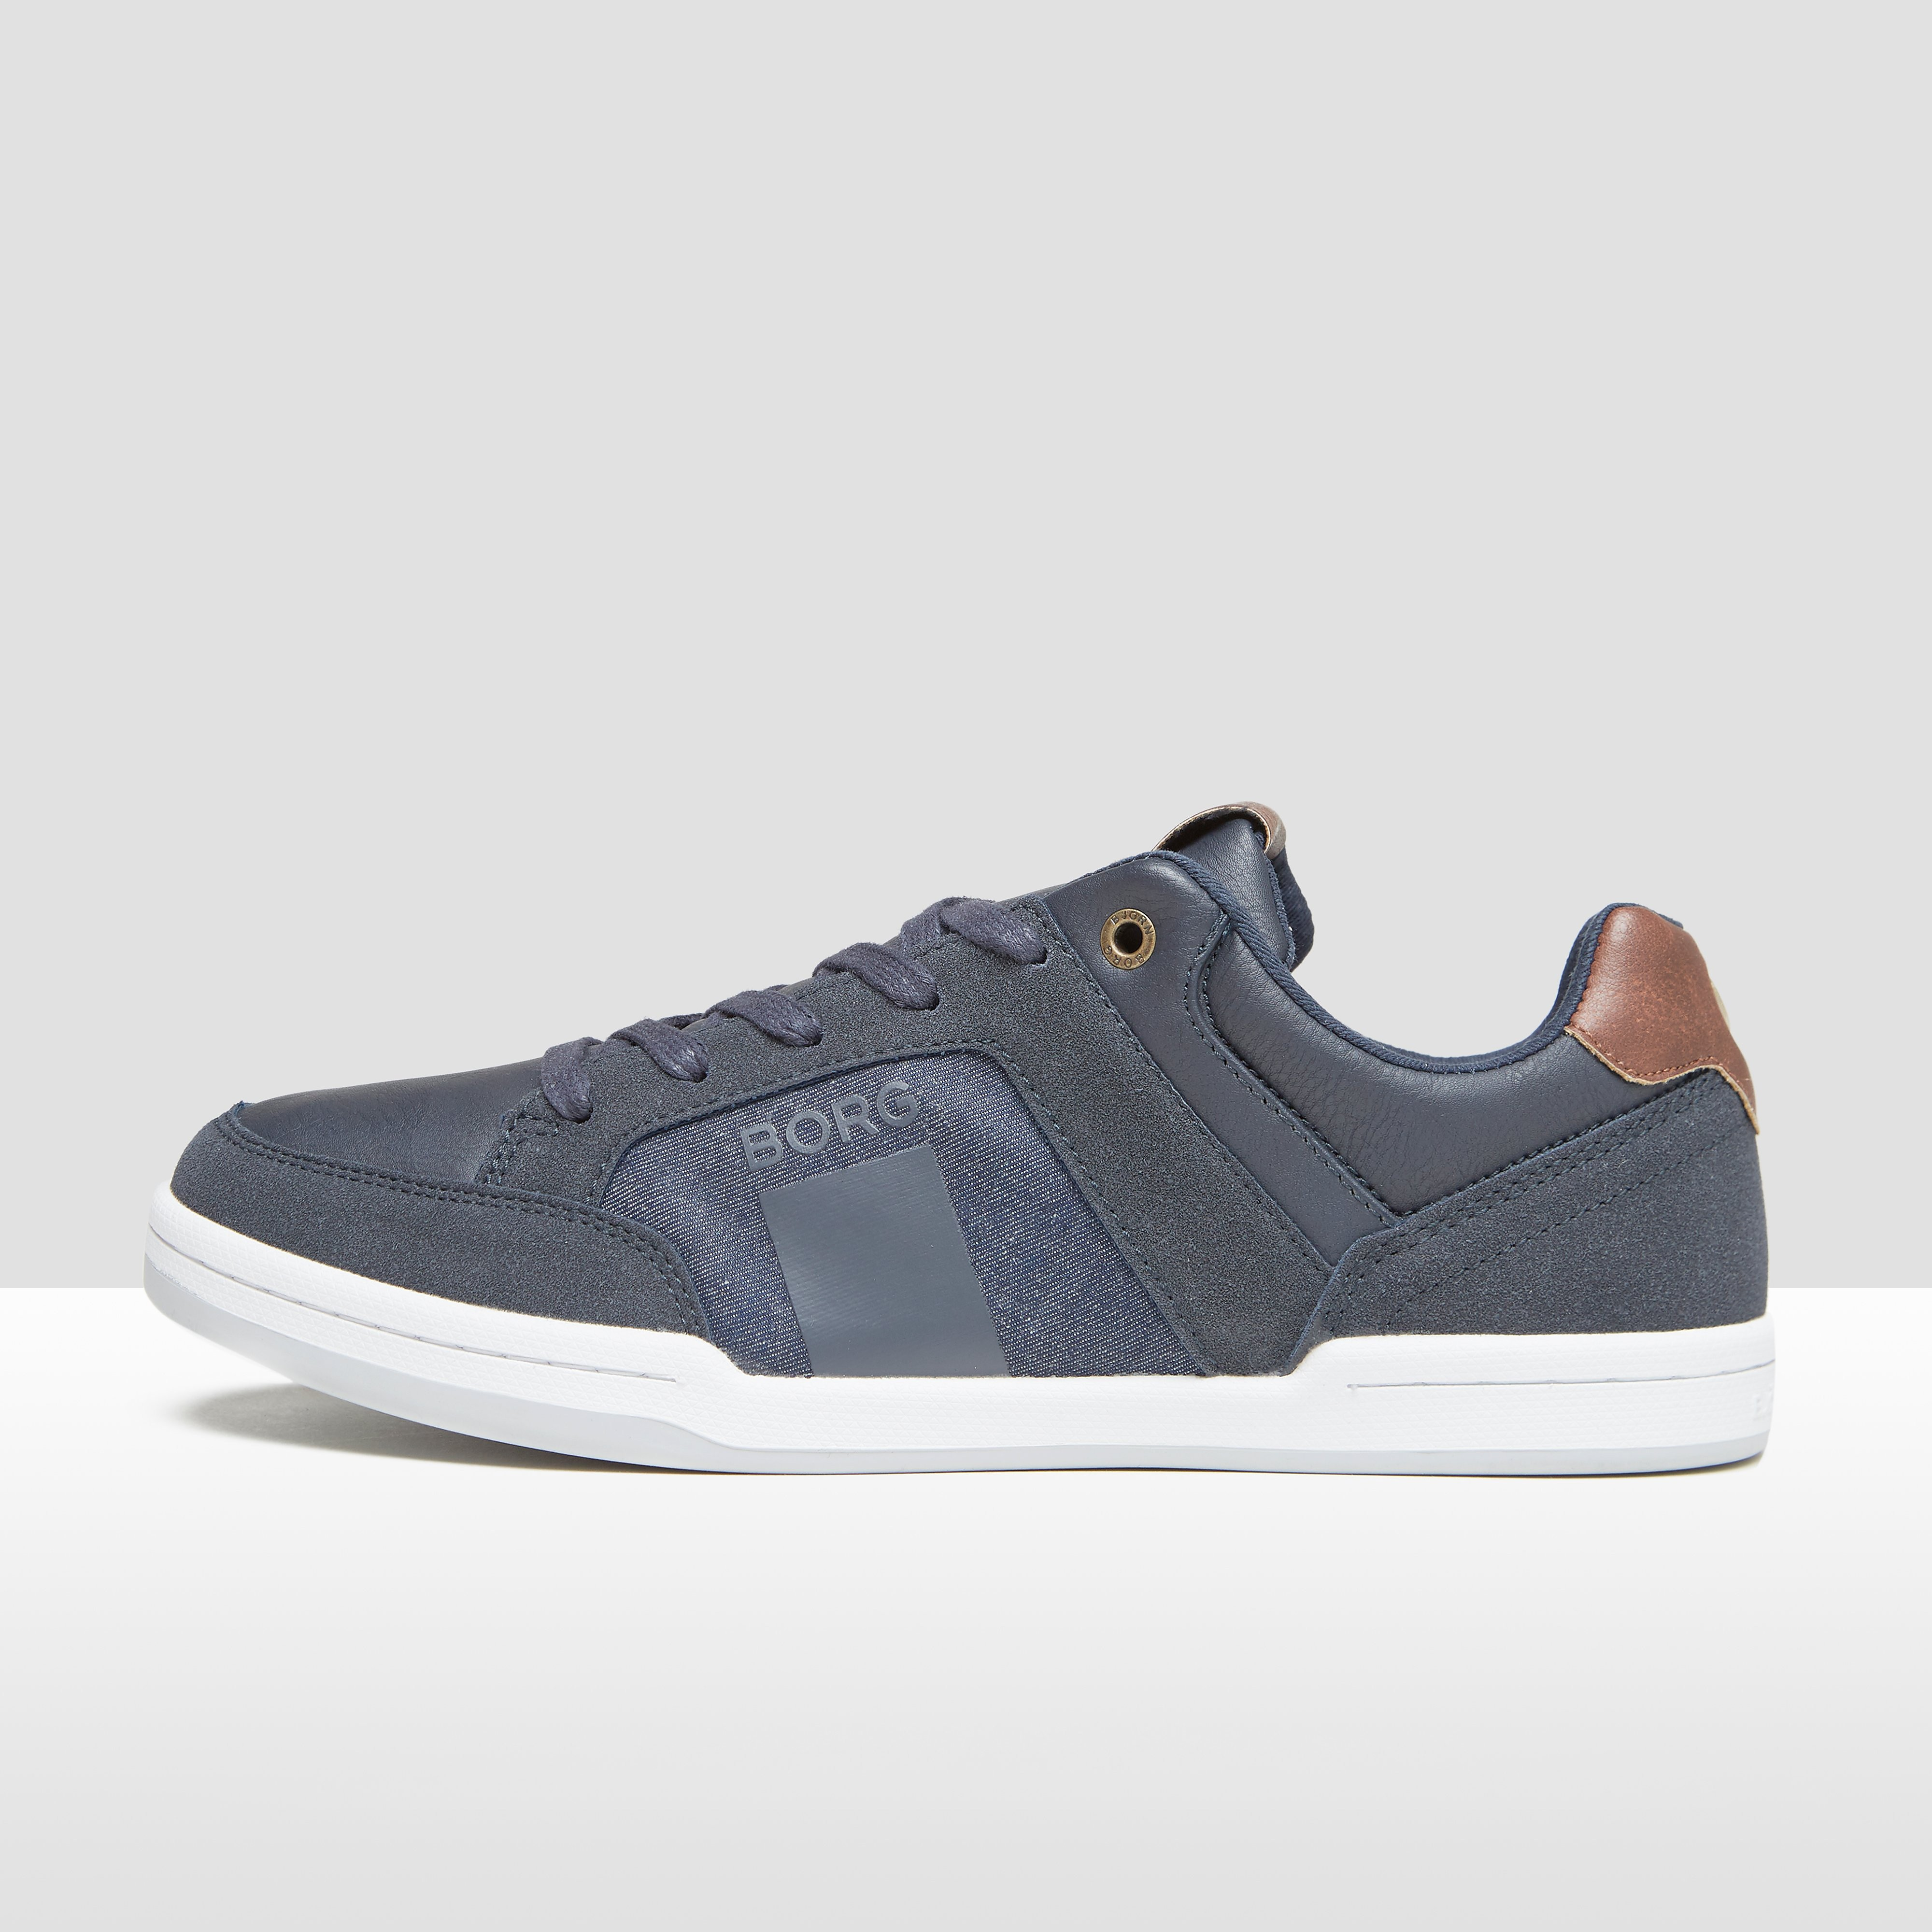 BJORN BORG T500 LOW DNM SNEAKERS ZWART HEREN